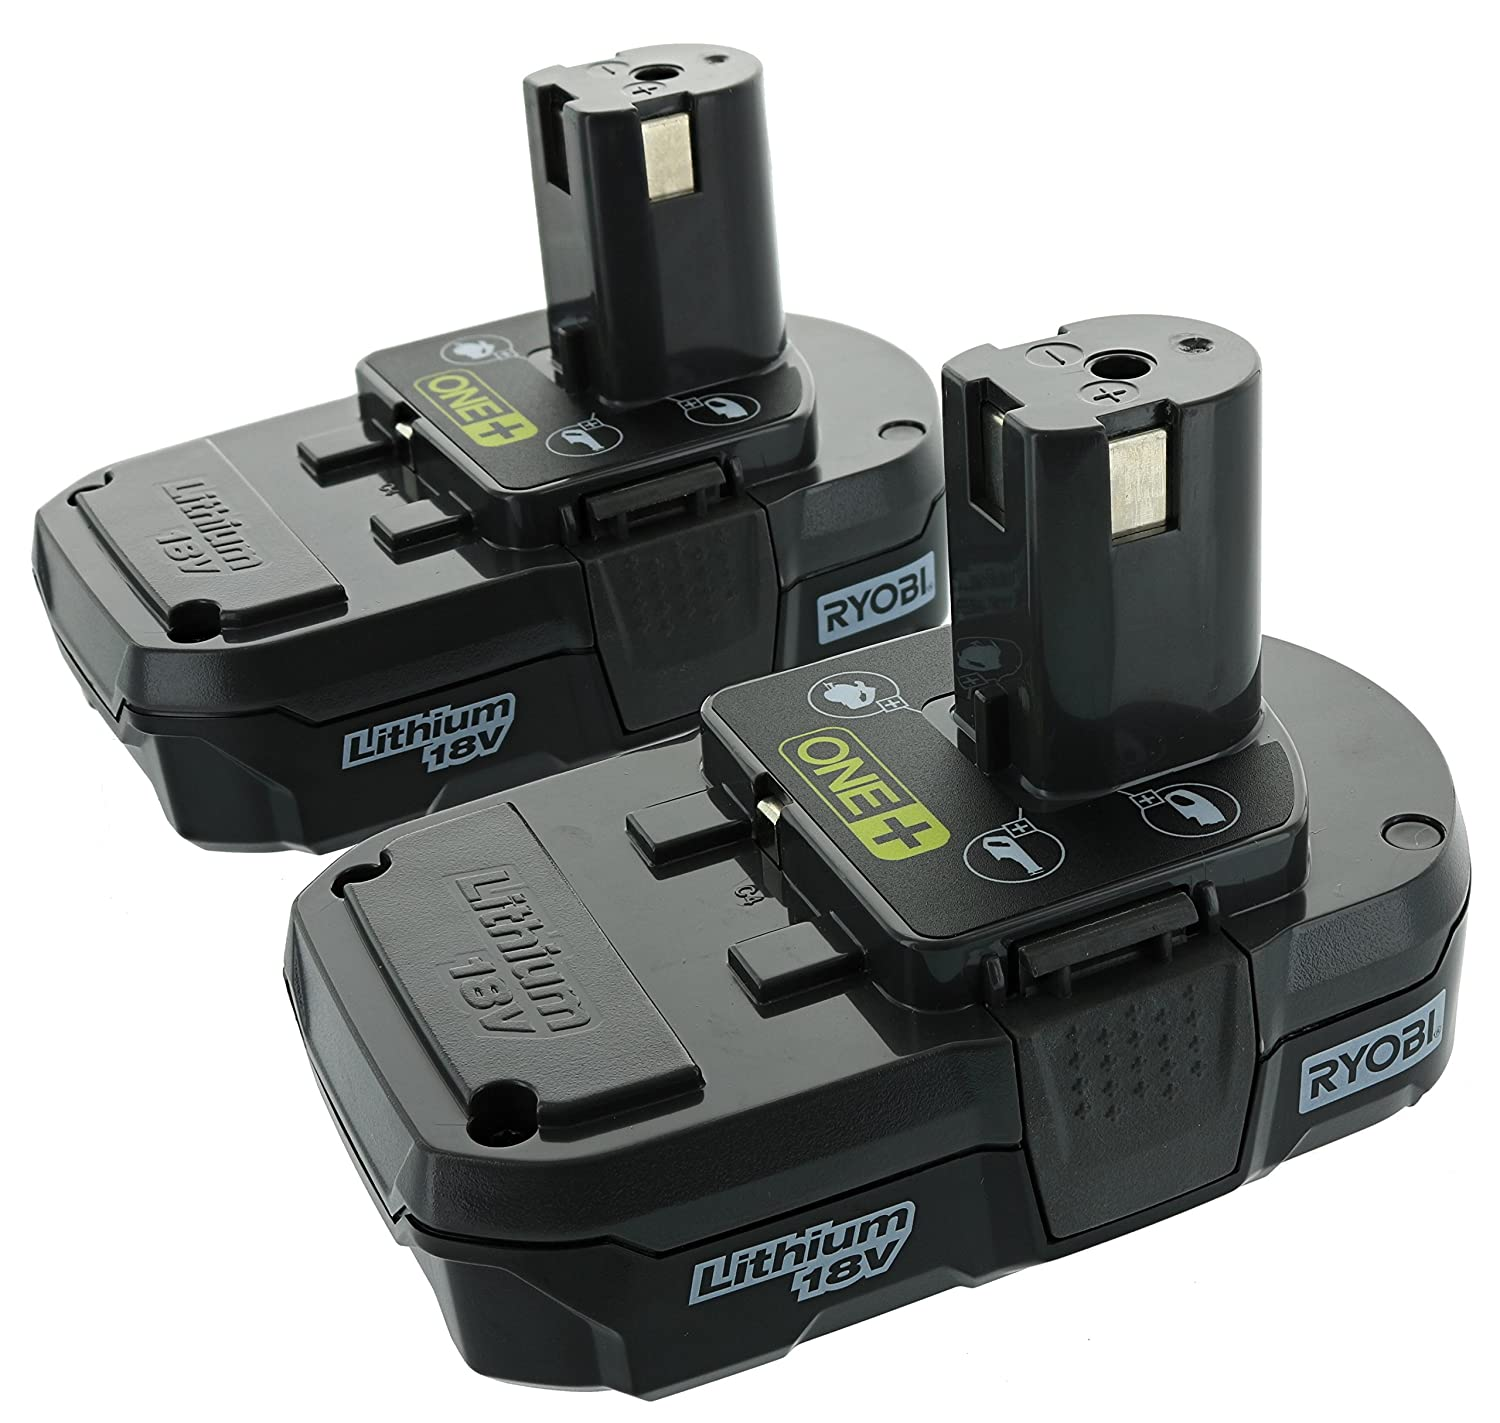 Ryobi P102 18V One+ Compact Lithium Ion Battery, 2 Pack FBA_P102